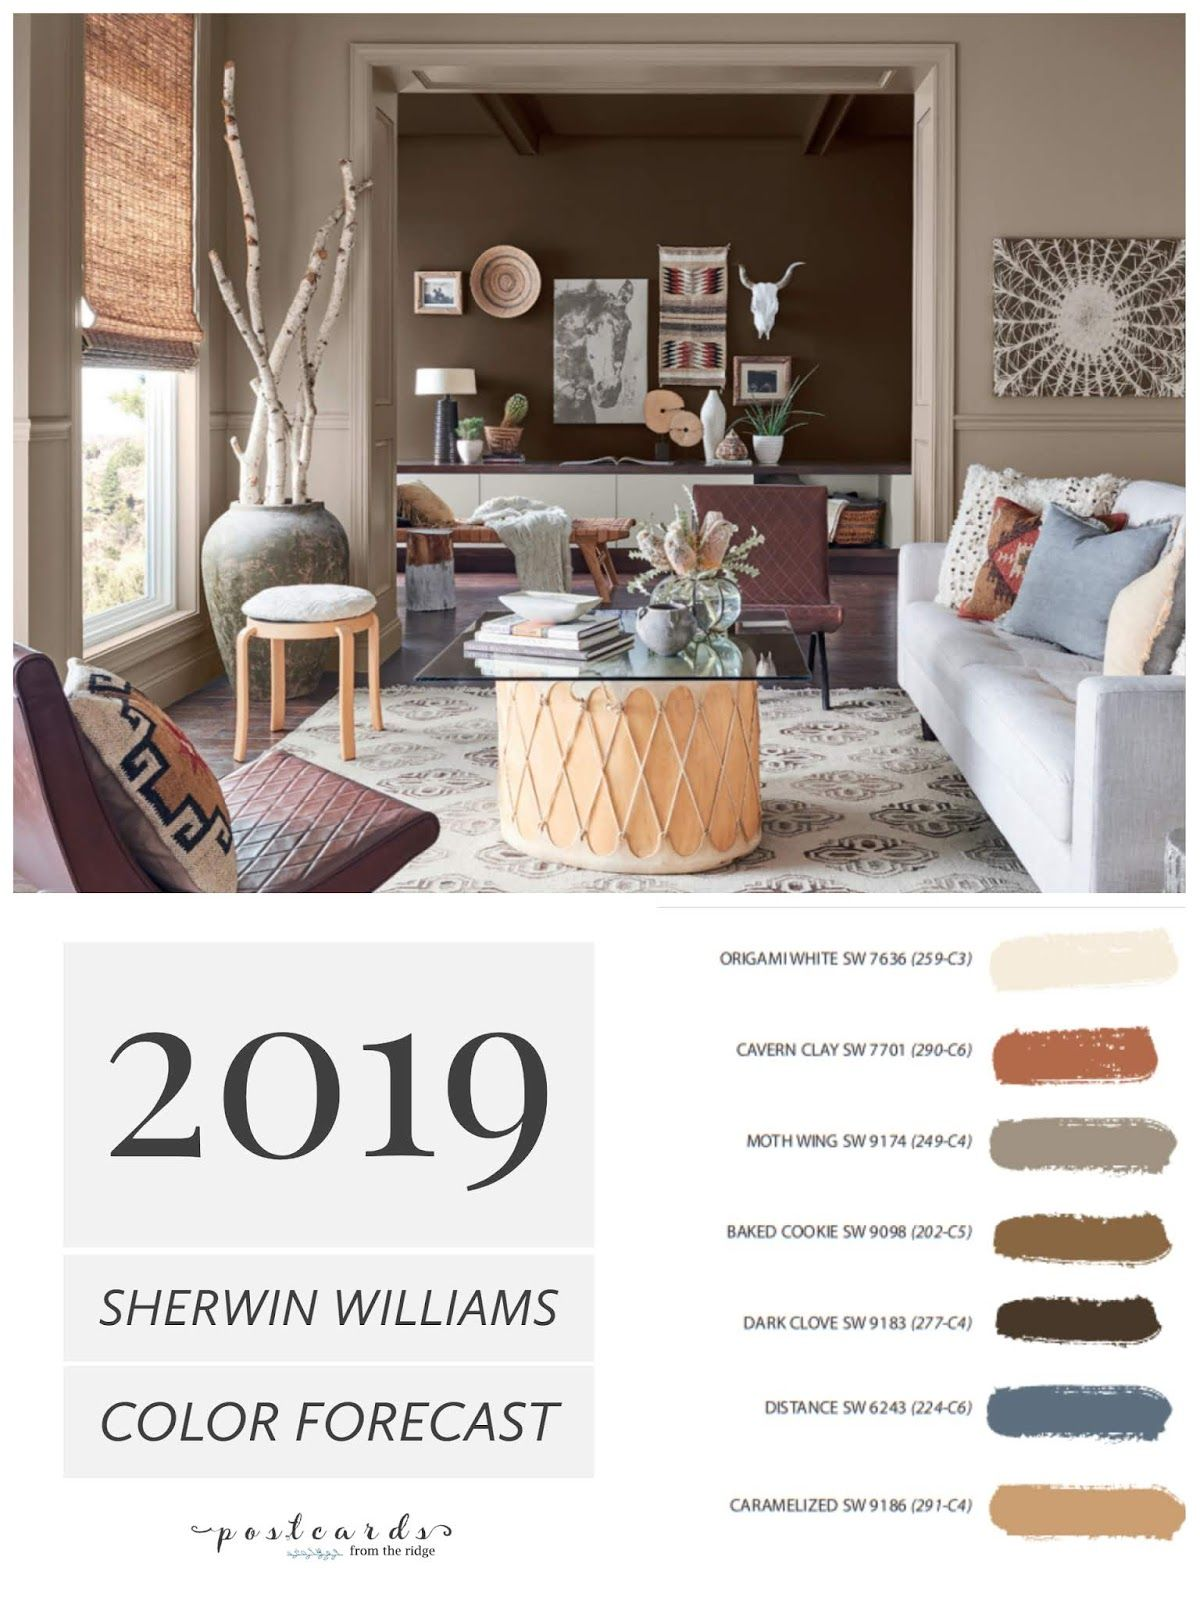 2019 Paint Color Forecast from Sherwin Williams #livingroompaintcolorideas